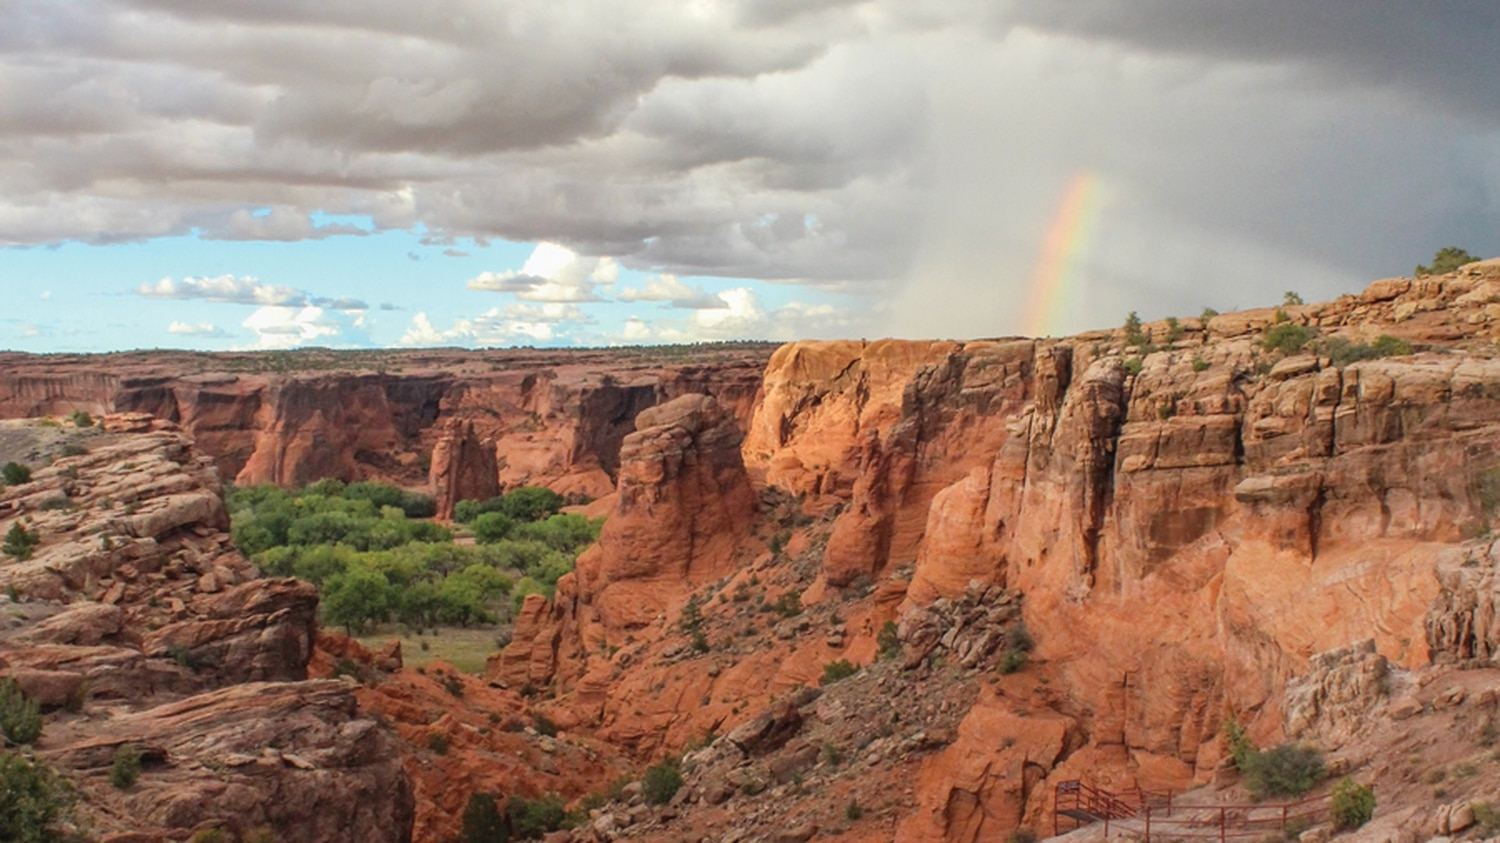 A drive or hike through nearby Canyon de Chelly is an ethereal evening adventure for ANE volunteers.